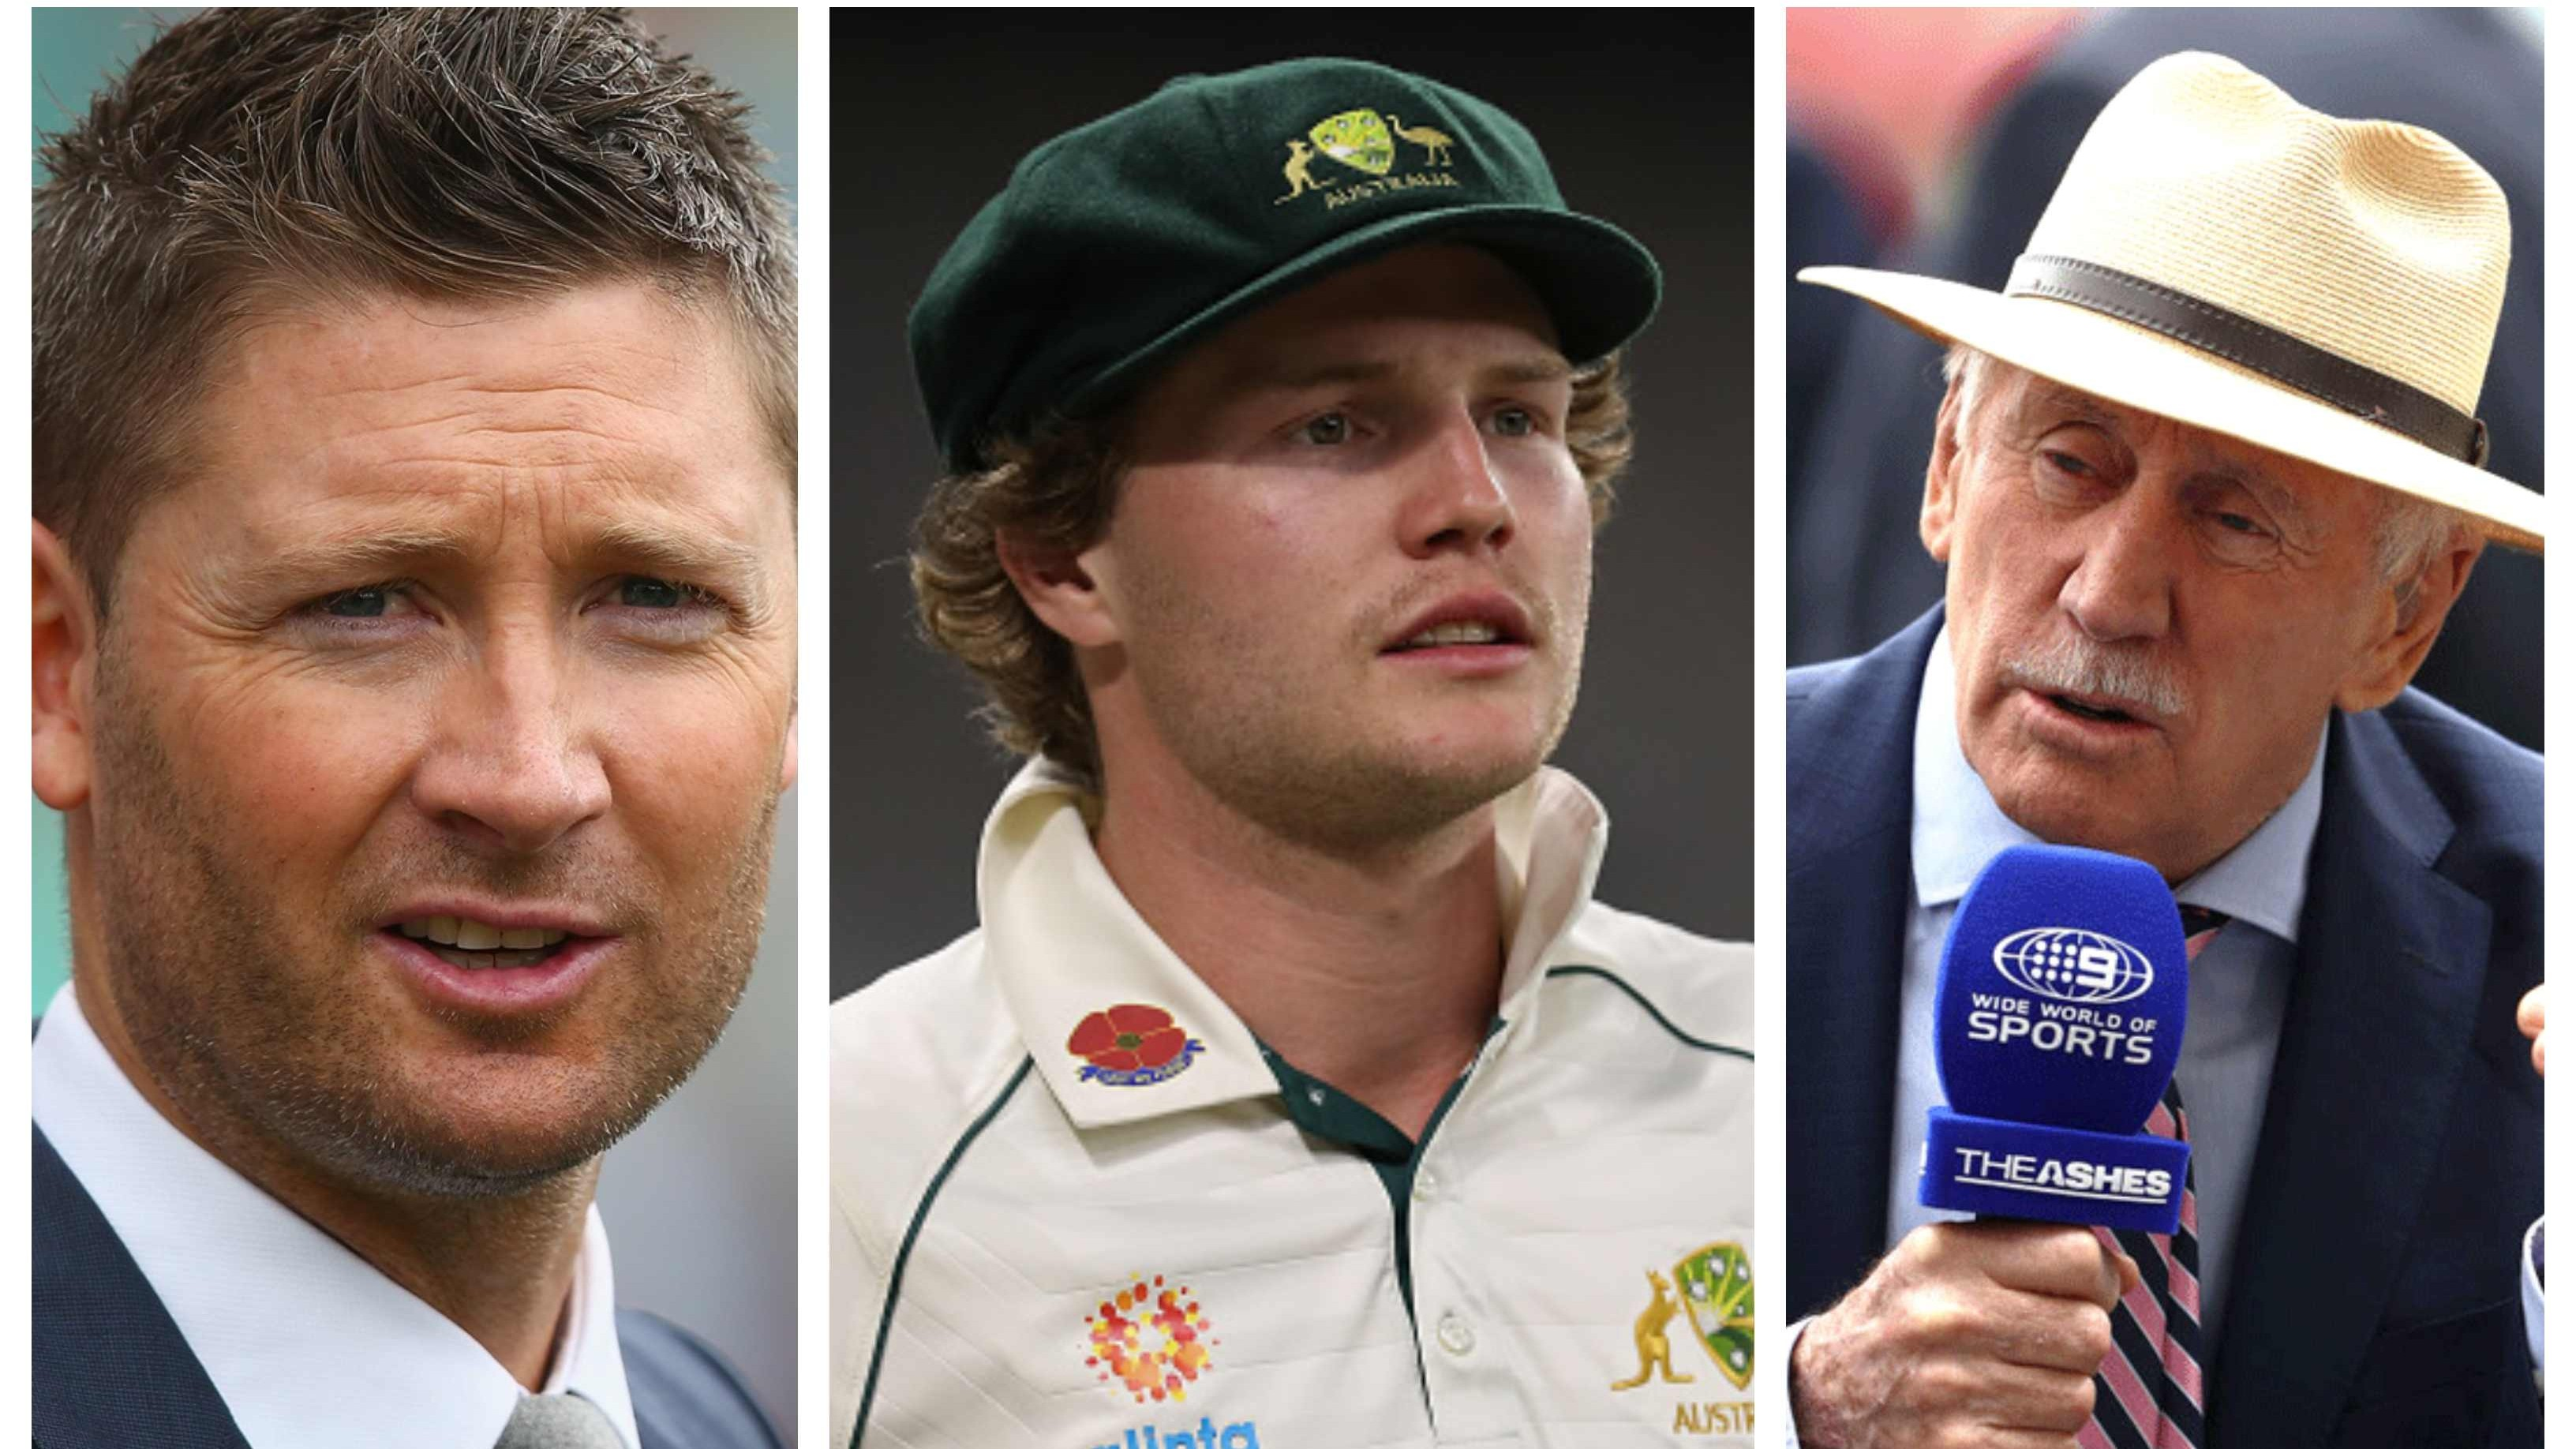 AUS v IND 2020-21: Australian greats bat for Will Pucovski's selection for India Tests as opener